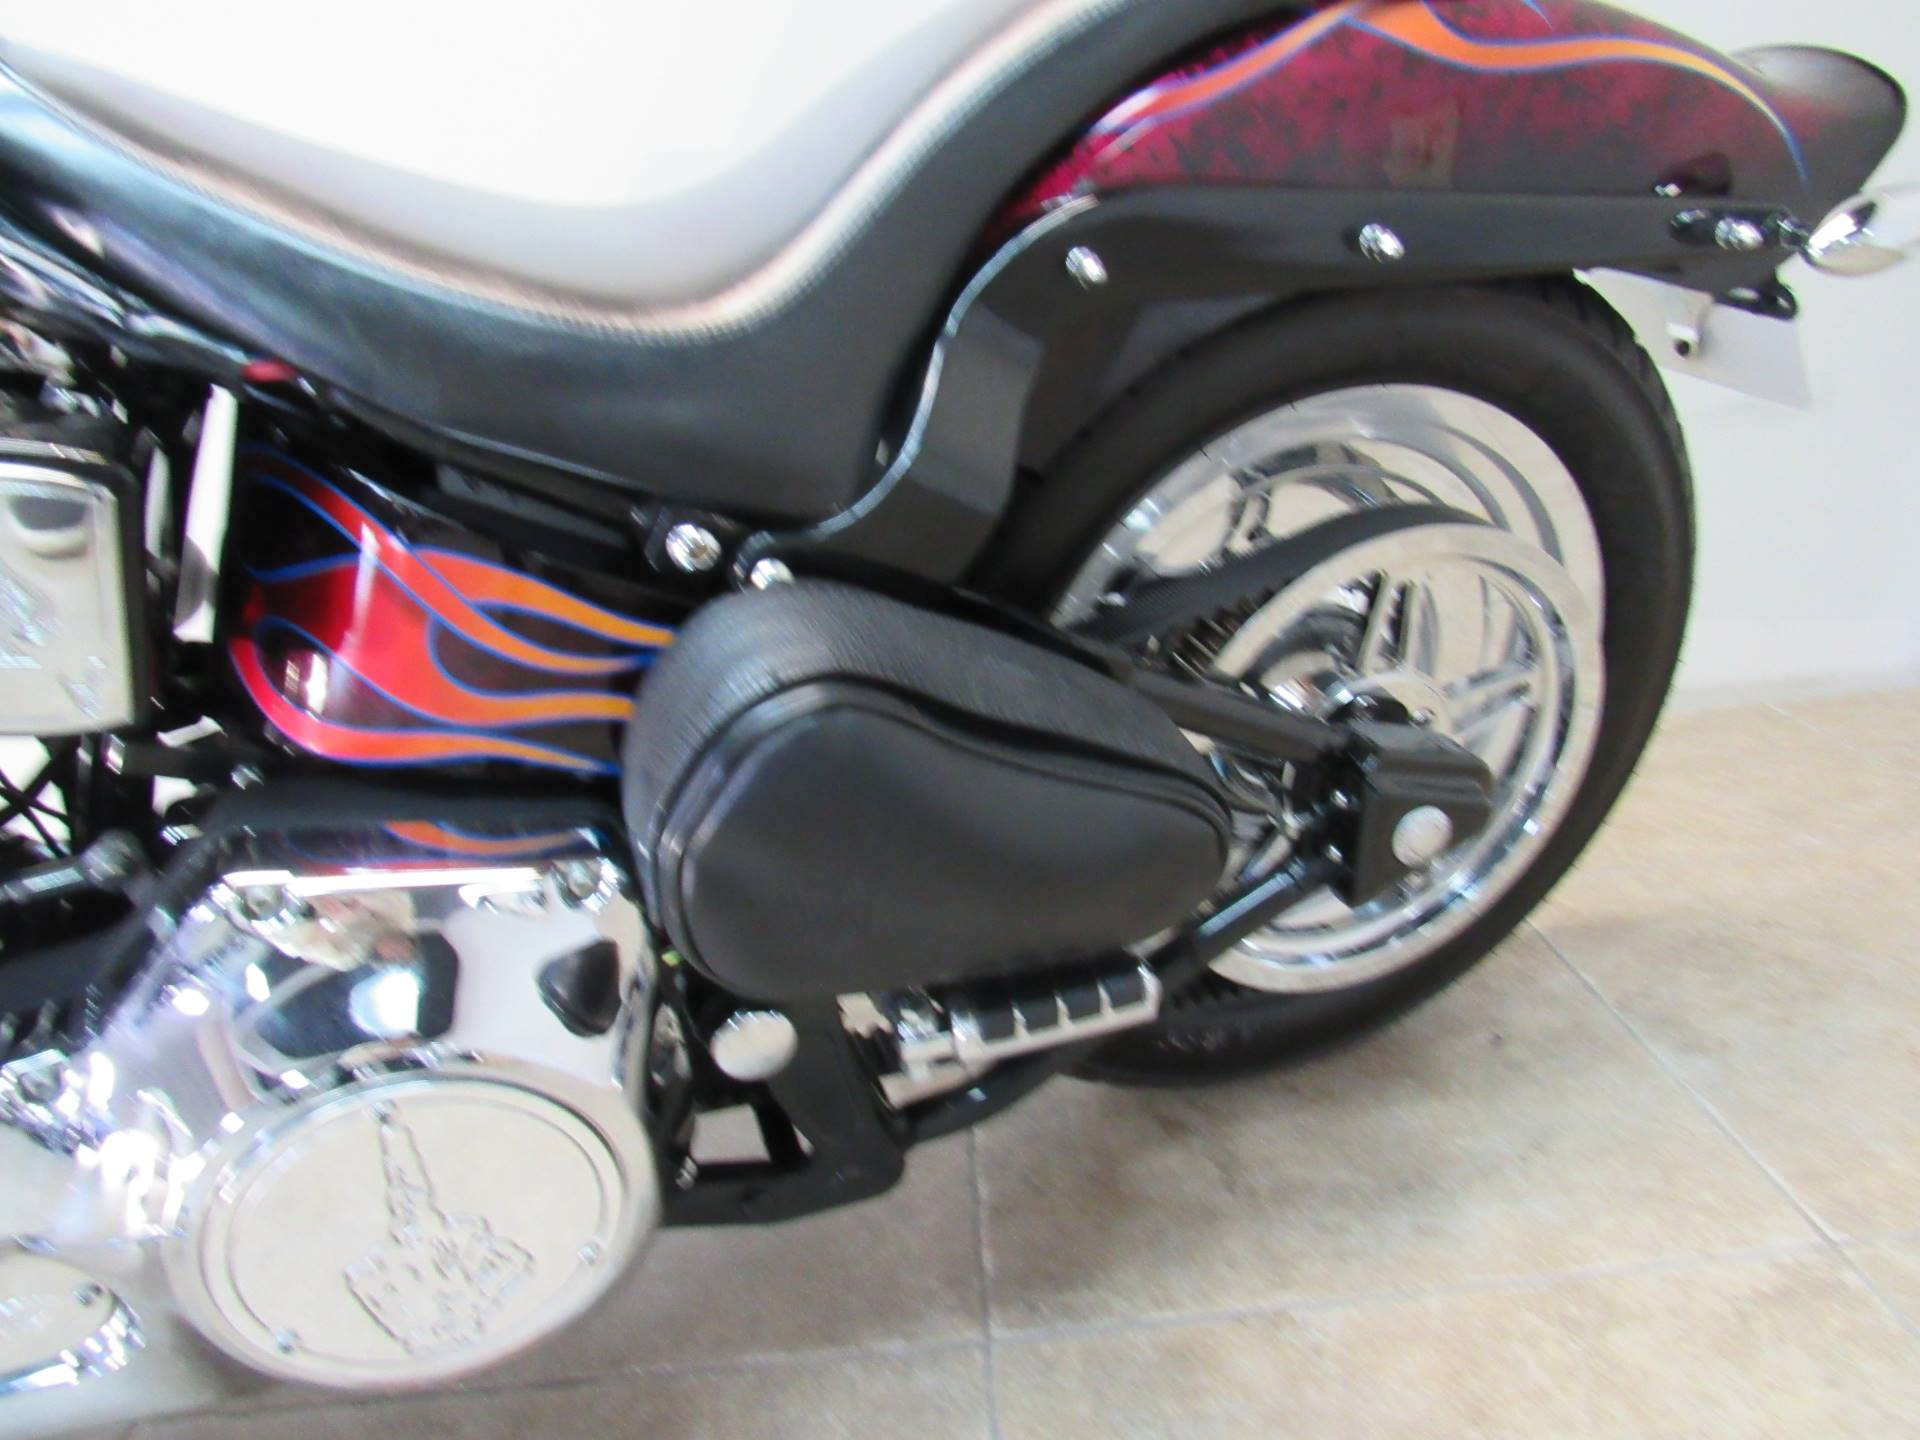 1996 Harley-Davidson softail custom in Temecula, California - Photo 29